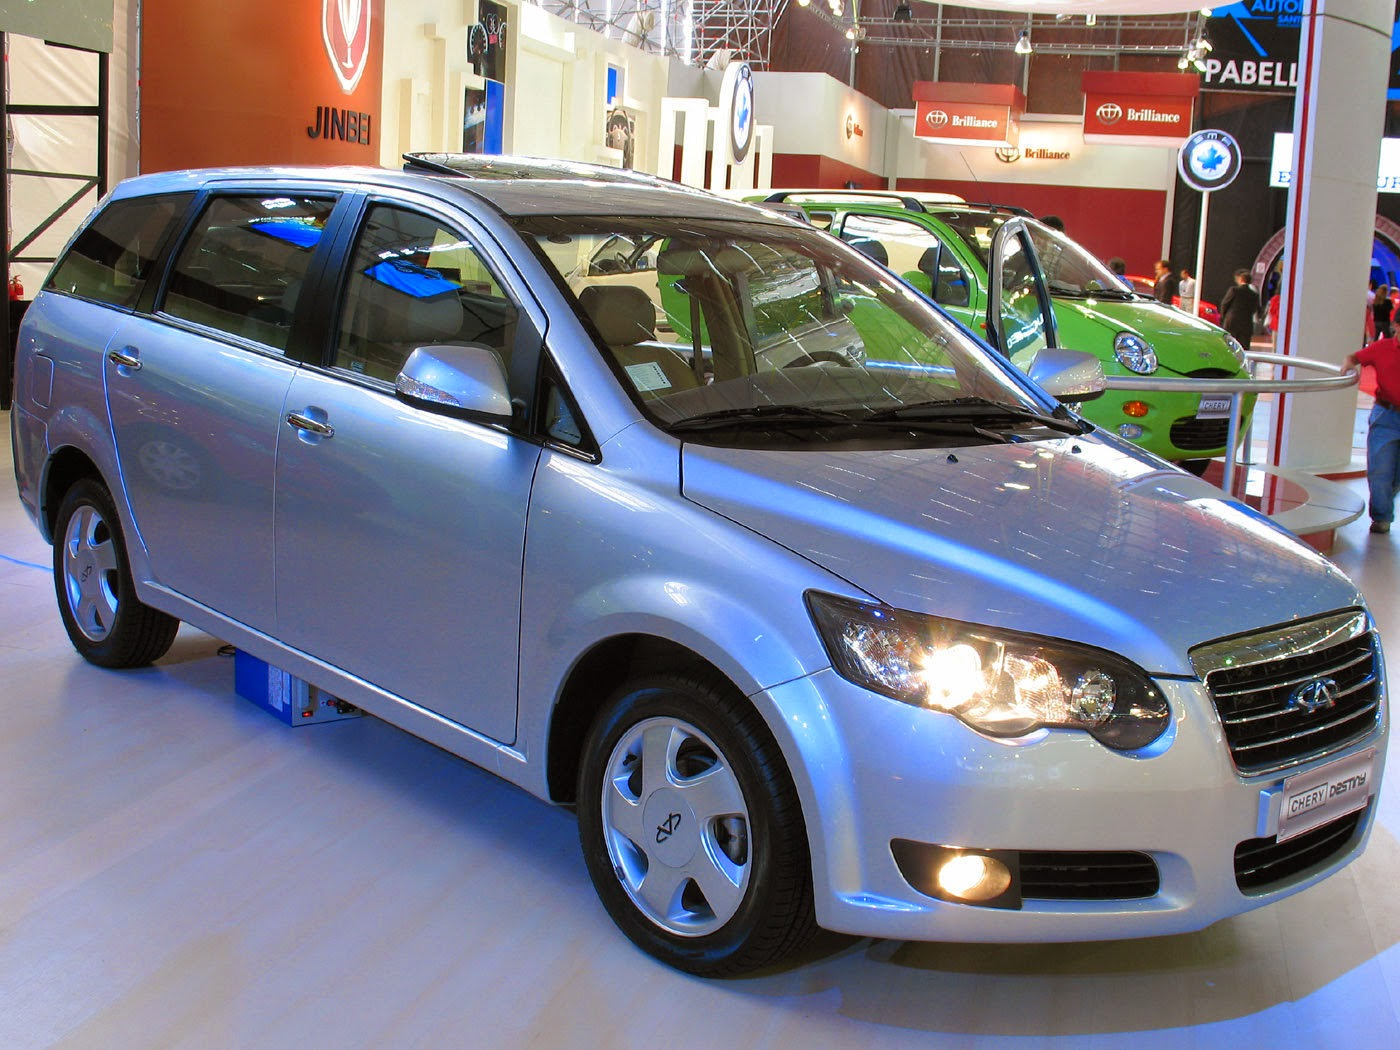 Chery V5, produced since 2008